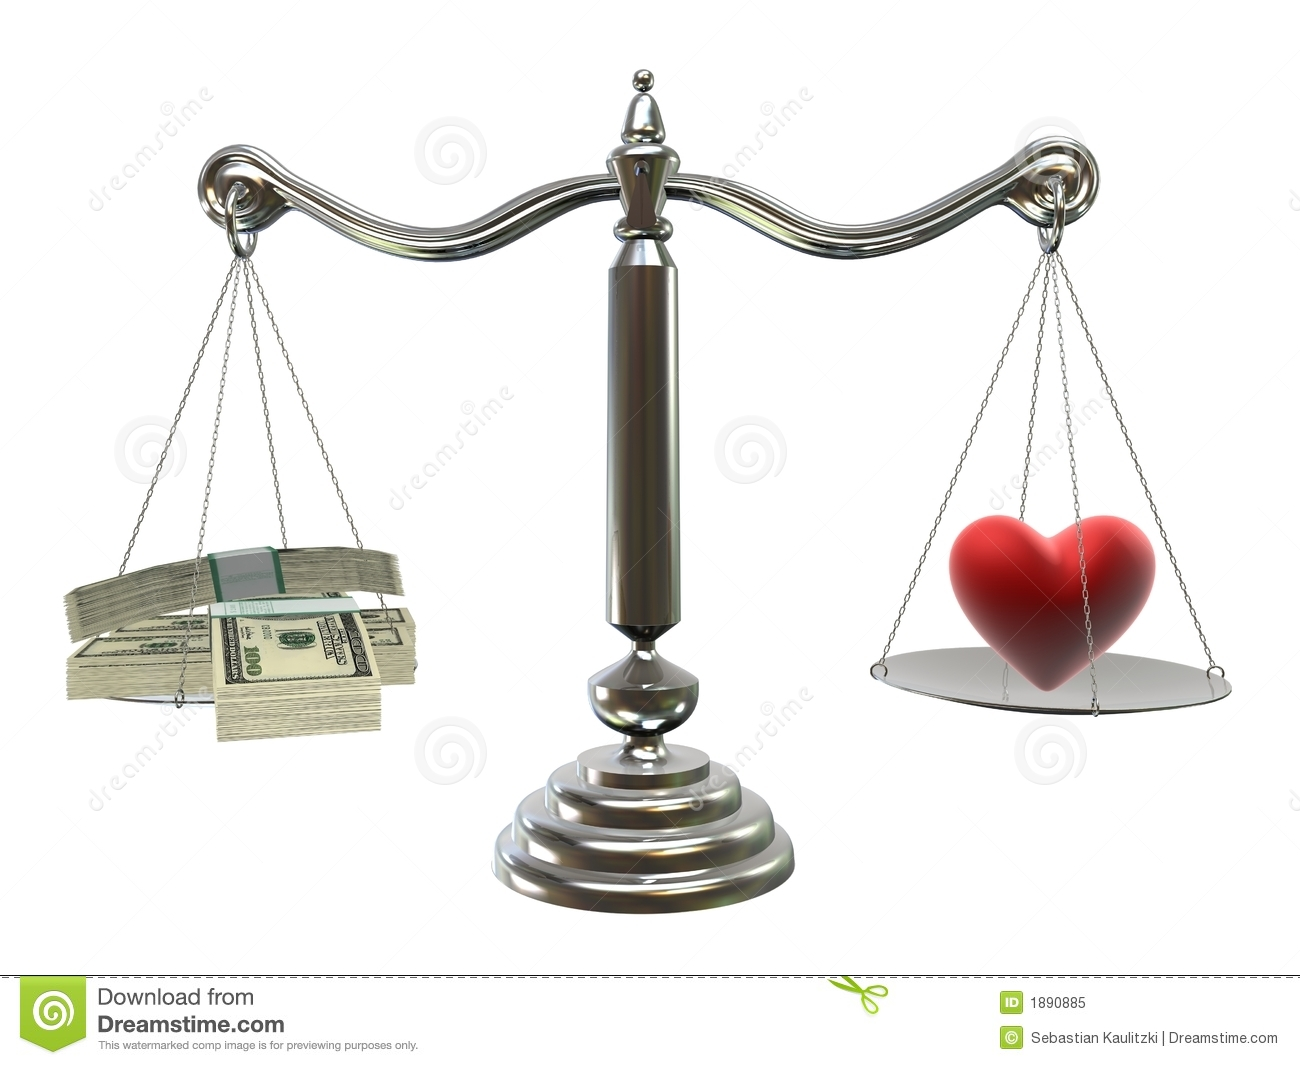 Money Or Love Royalty Free Stock Photo - Image: 1890885